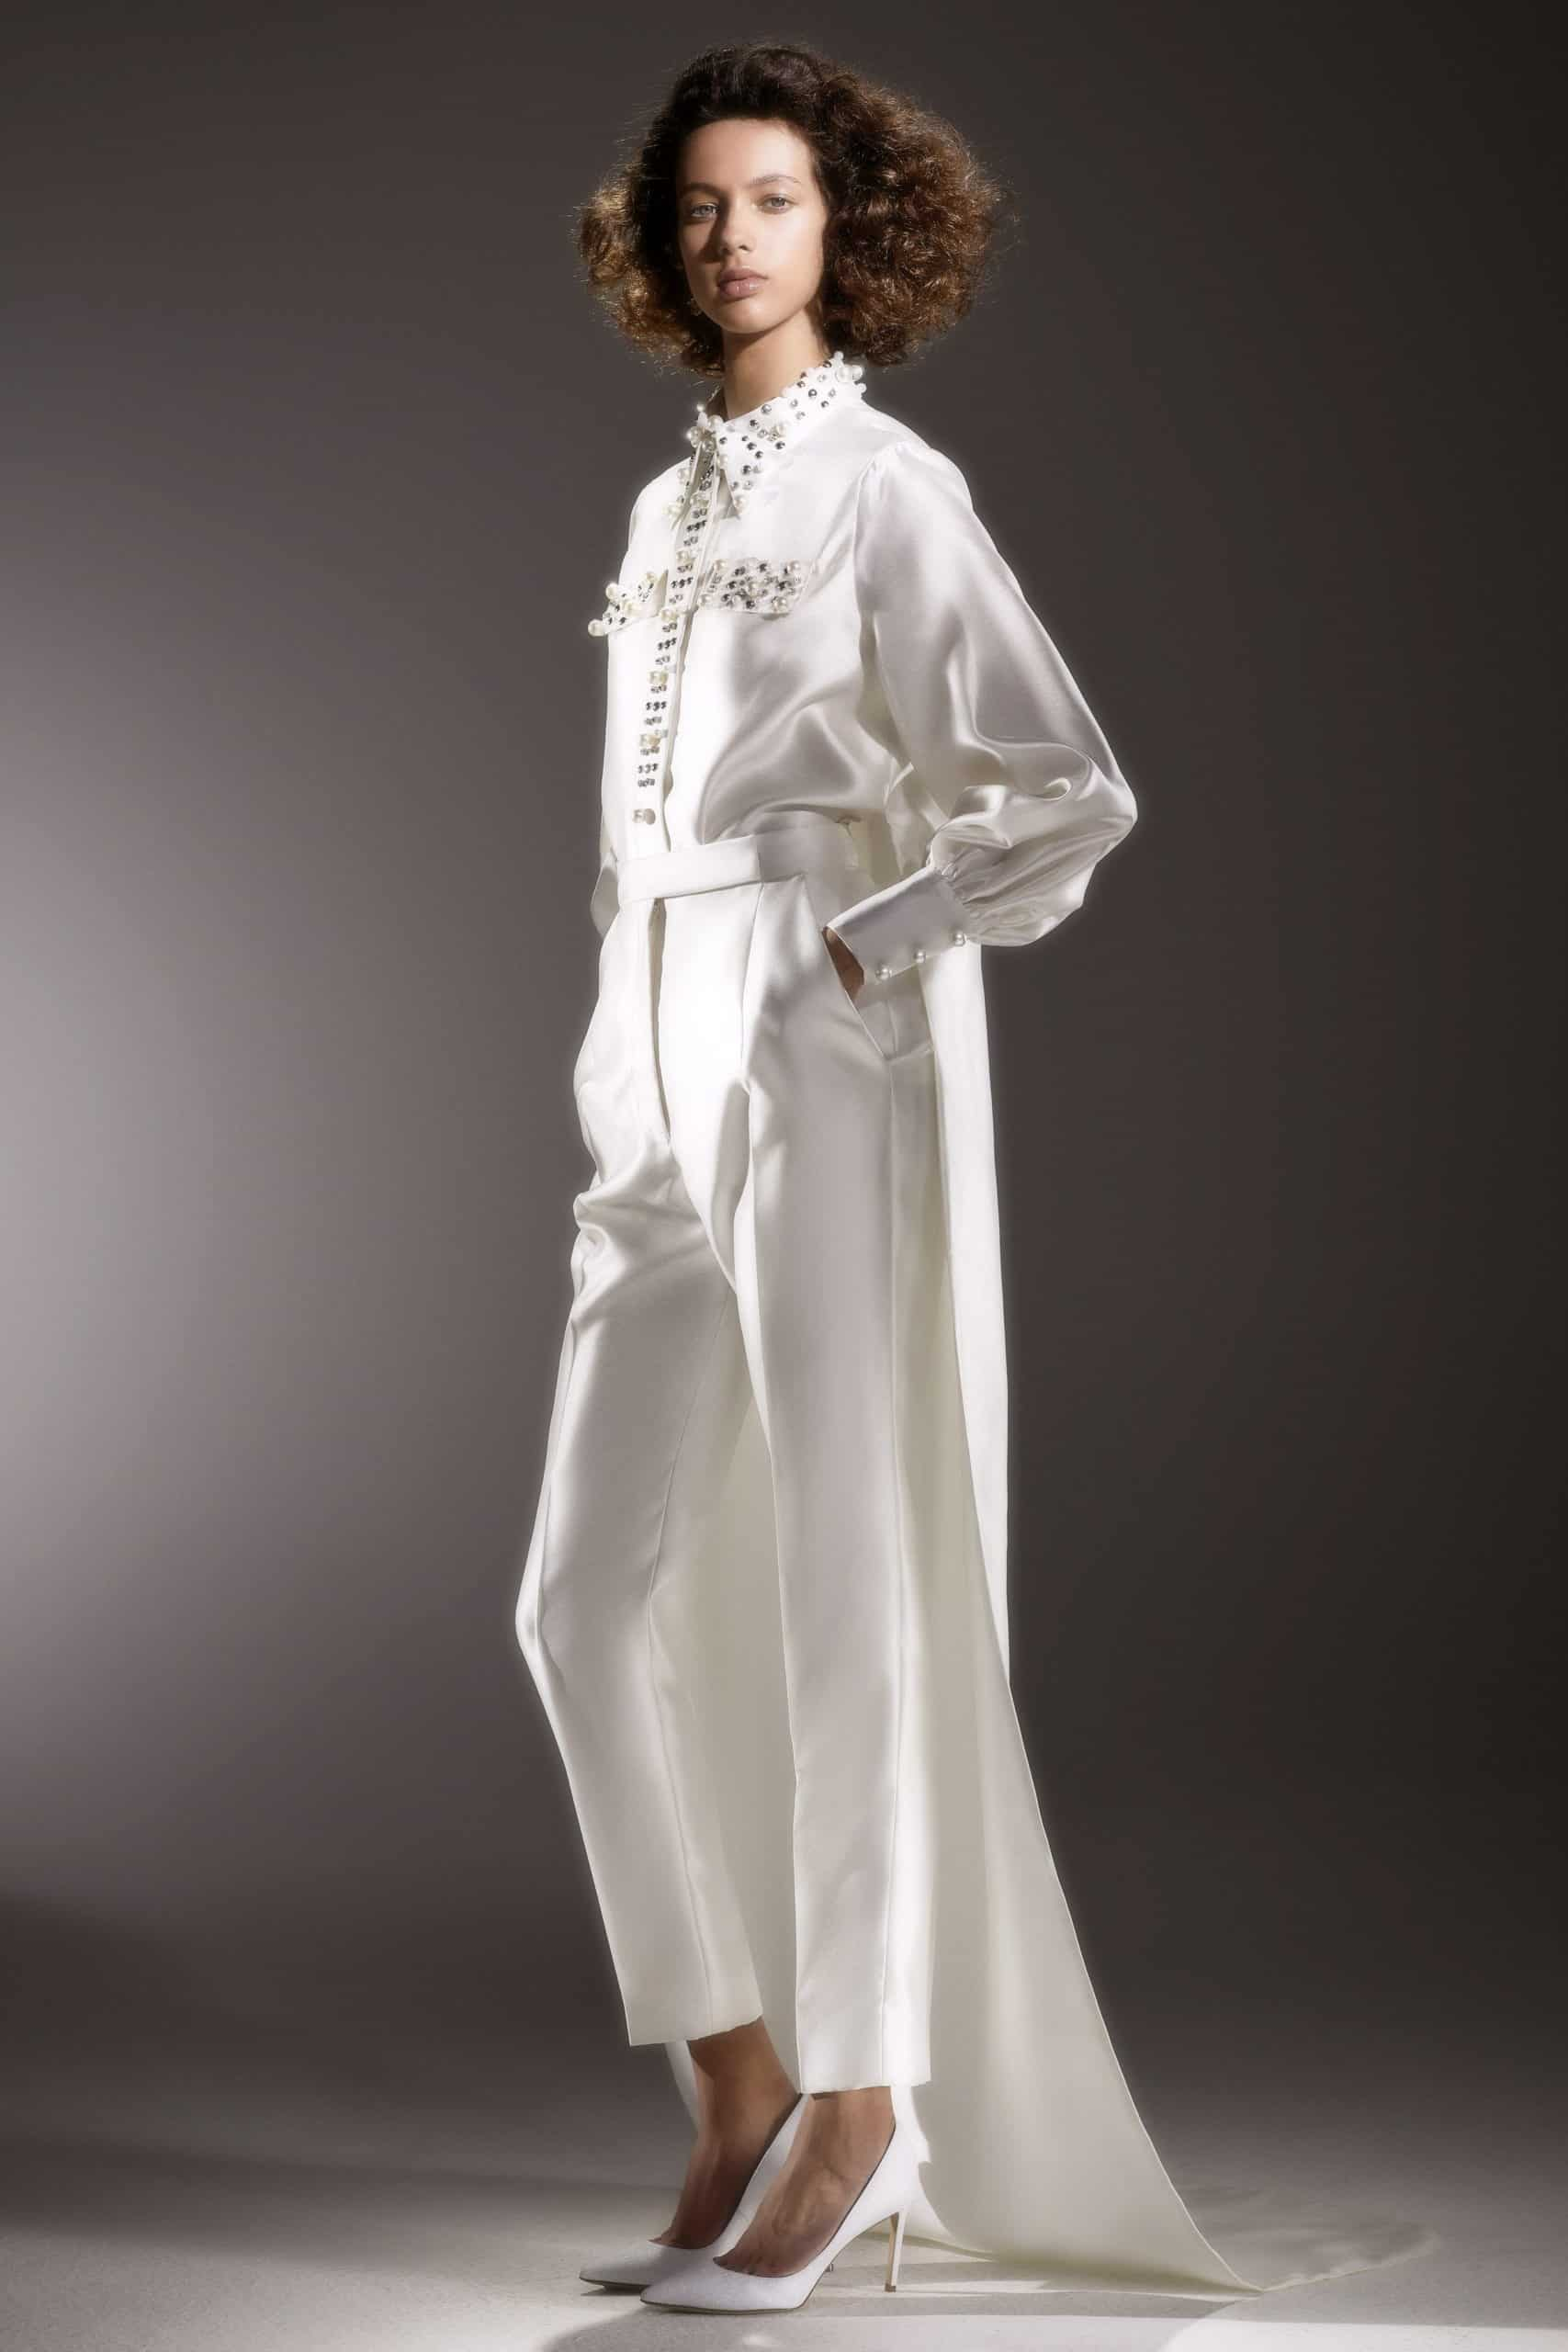 suit wedding dress with tail by Viktor and Rolf